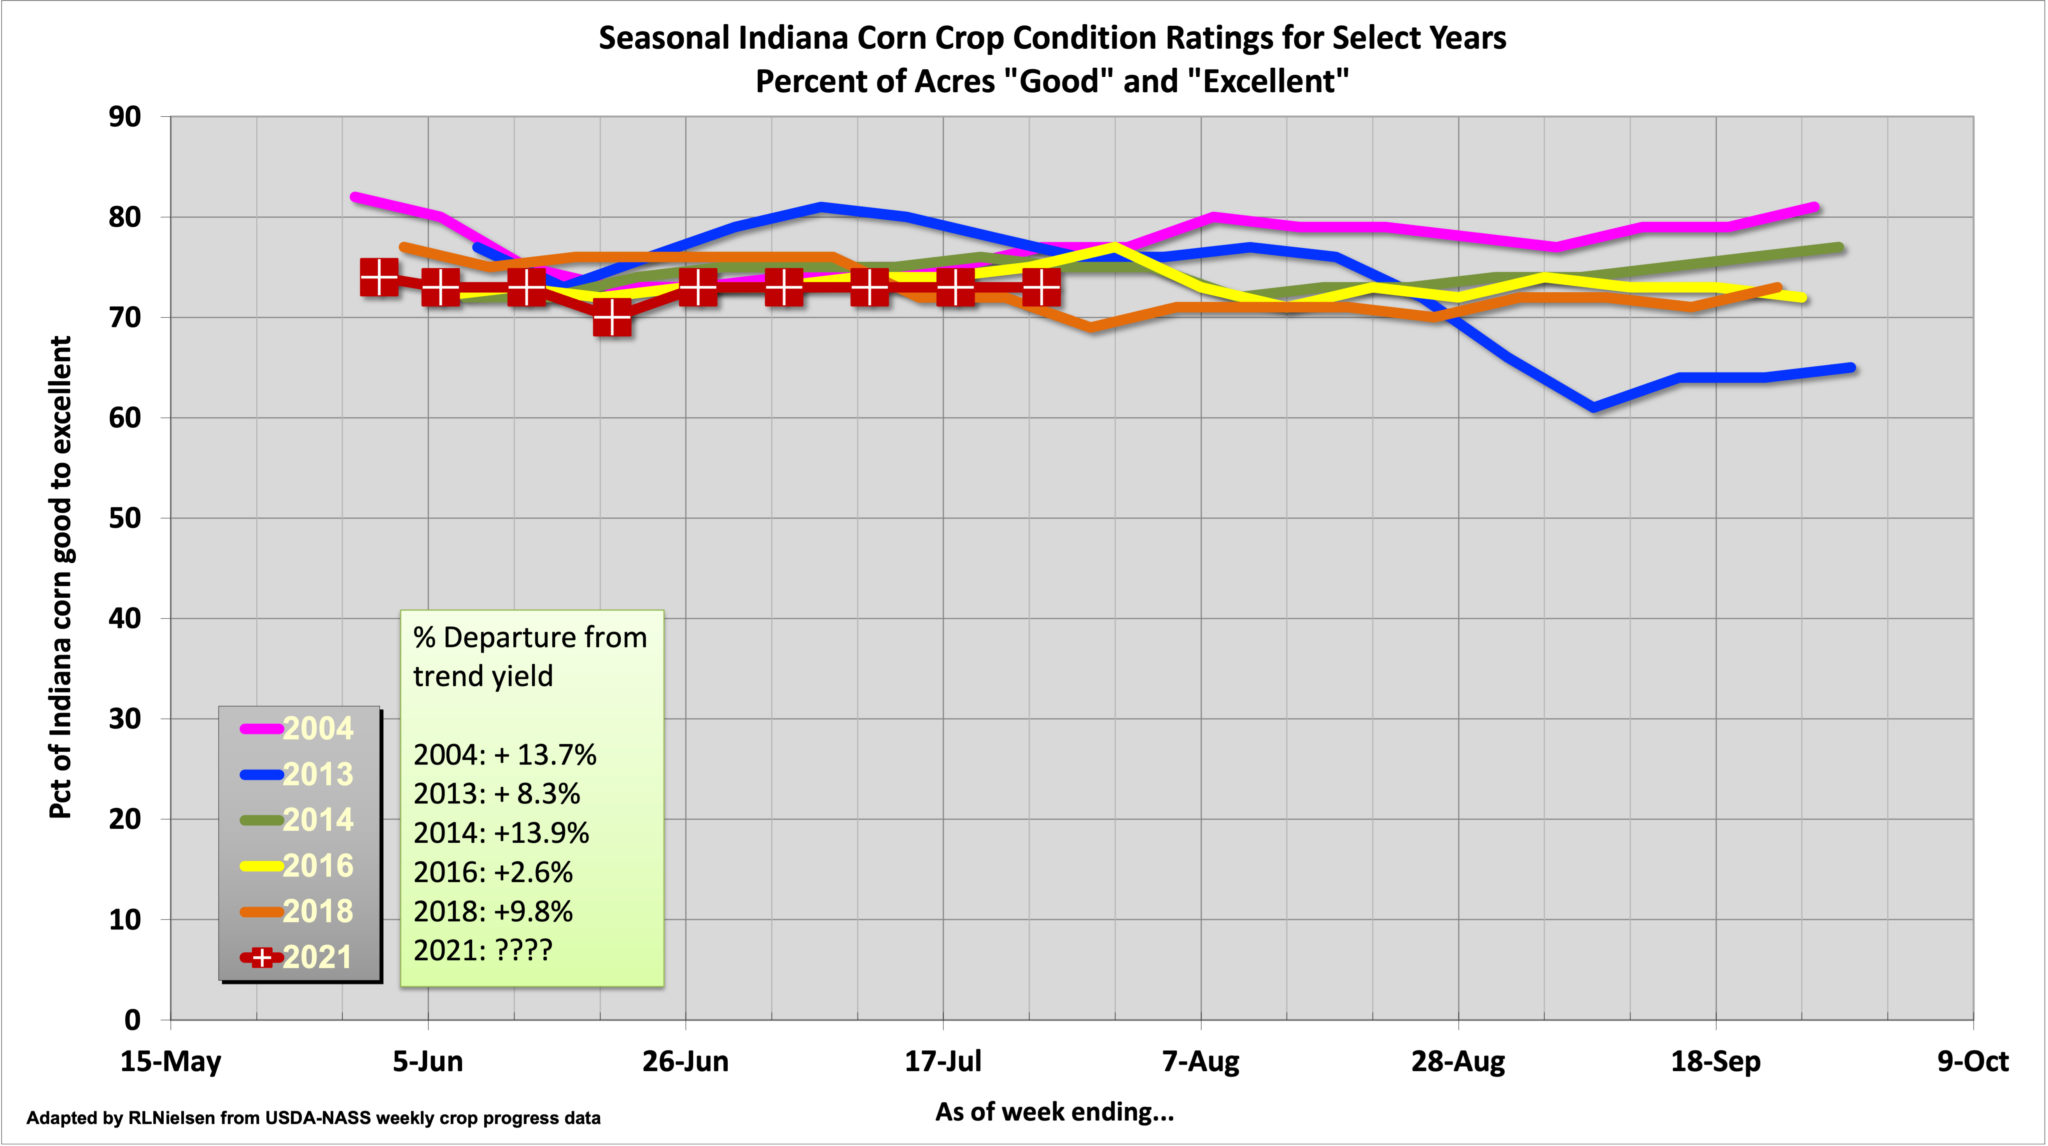 Figure 1. Seasonal Indiana Corn Crop Condition Ratings for Select Years. Adapted from USDA-NASS weekly crop progress data.